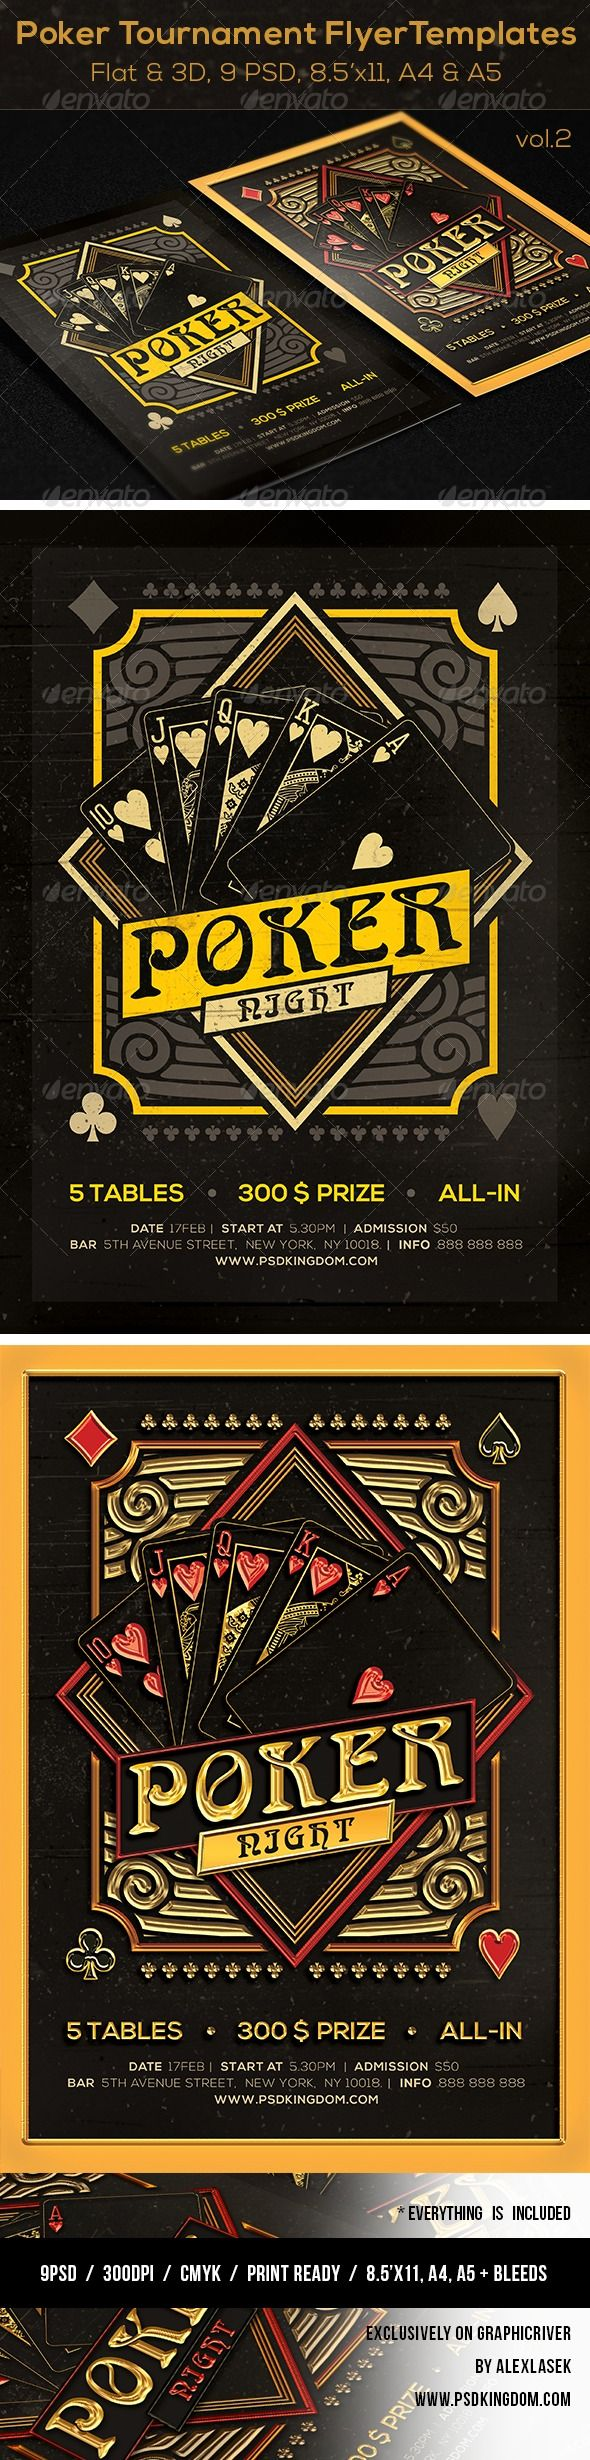 Poker Magazine Ad, Poster or Flyer - Flat & 3D v2 - Sports Events